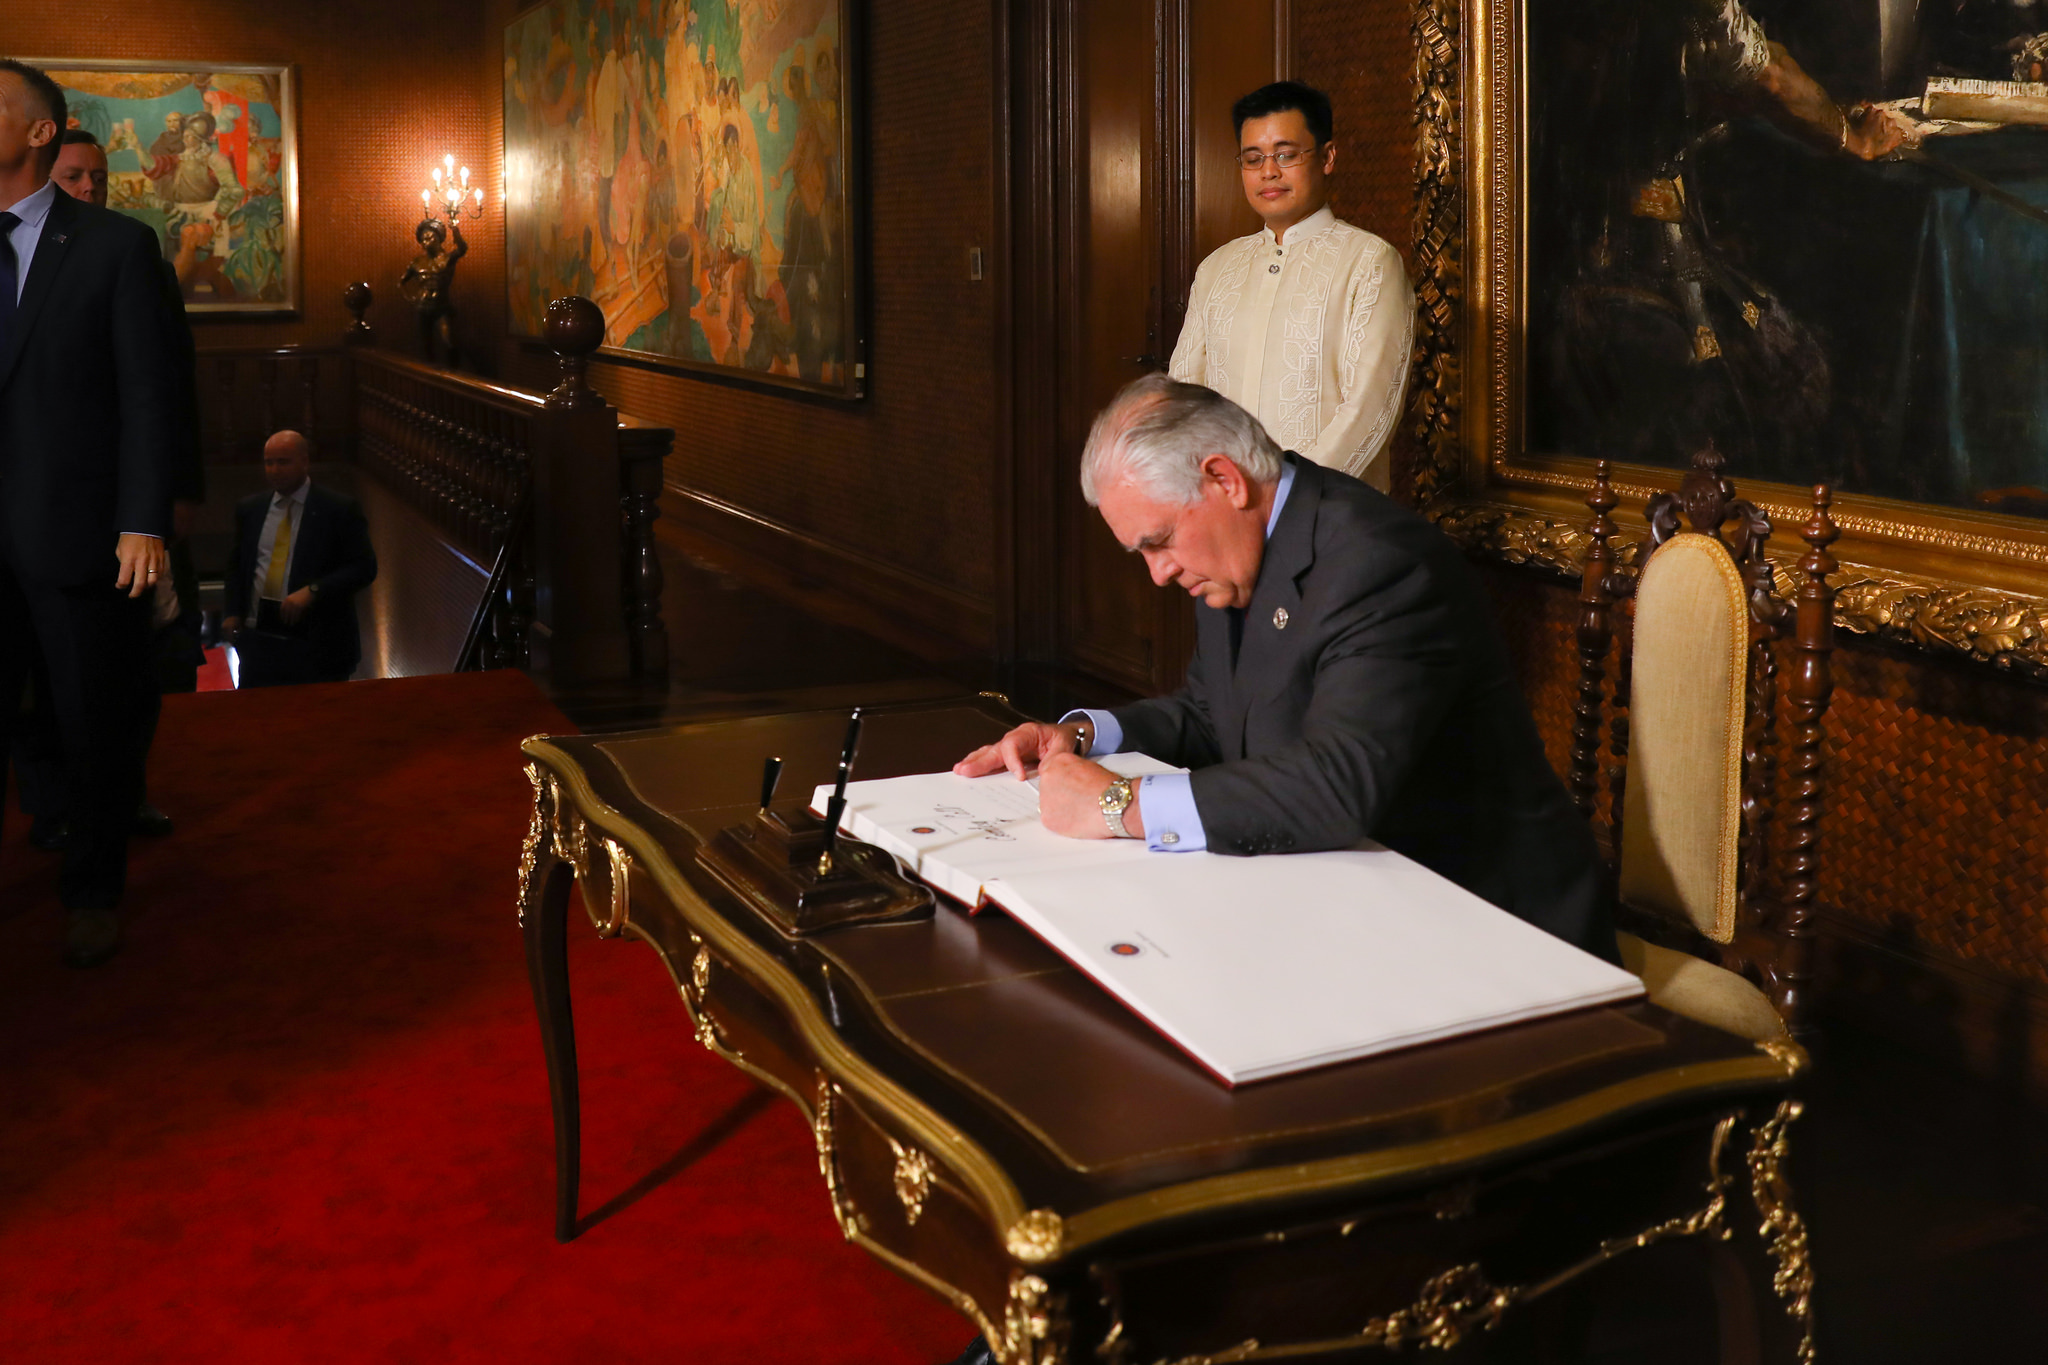 File:Secretary Tillerson Signs the Guest Book at Malacañang